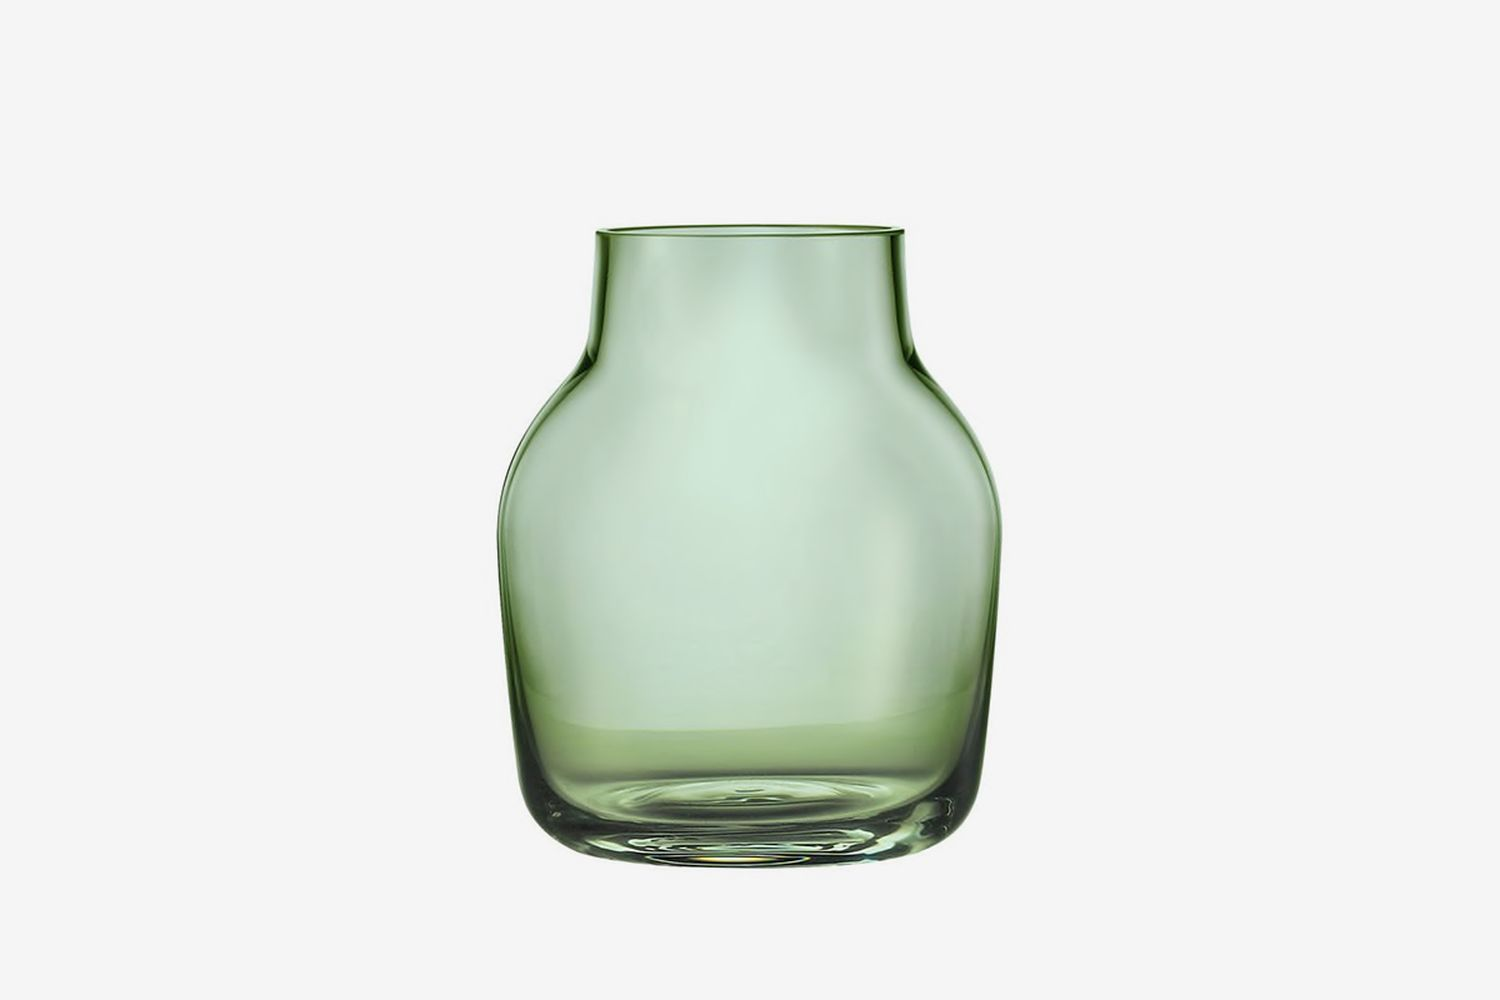 Small Silent Glass Vase